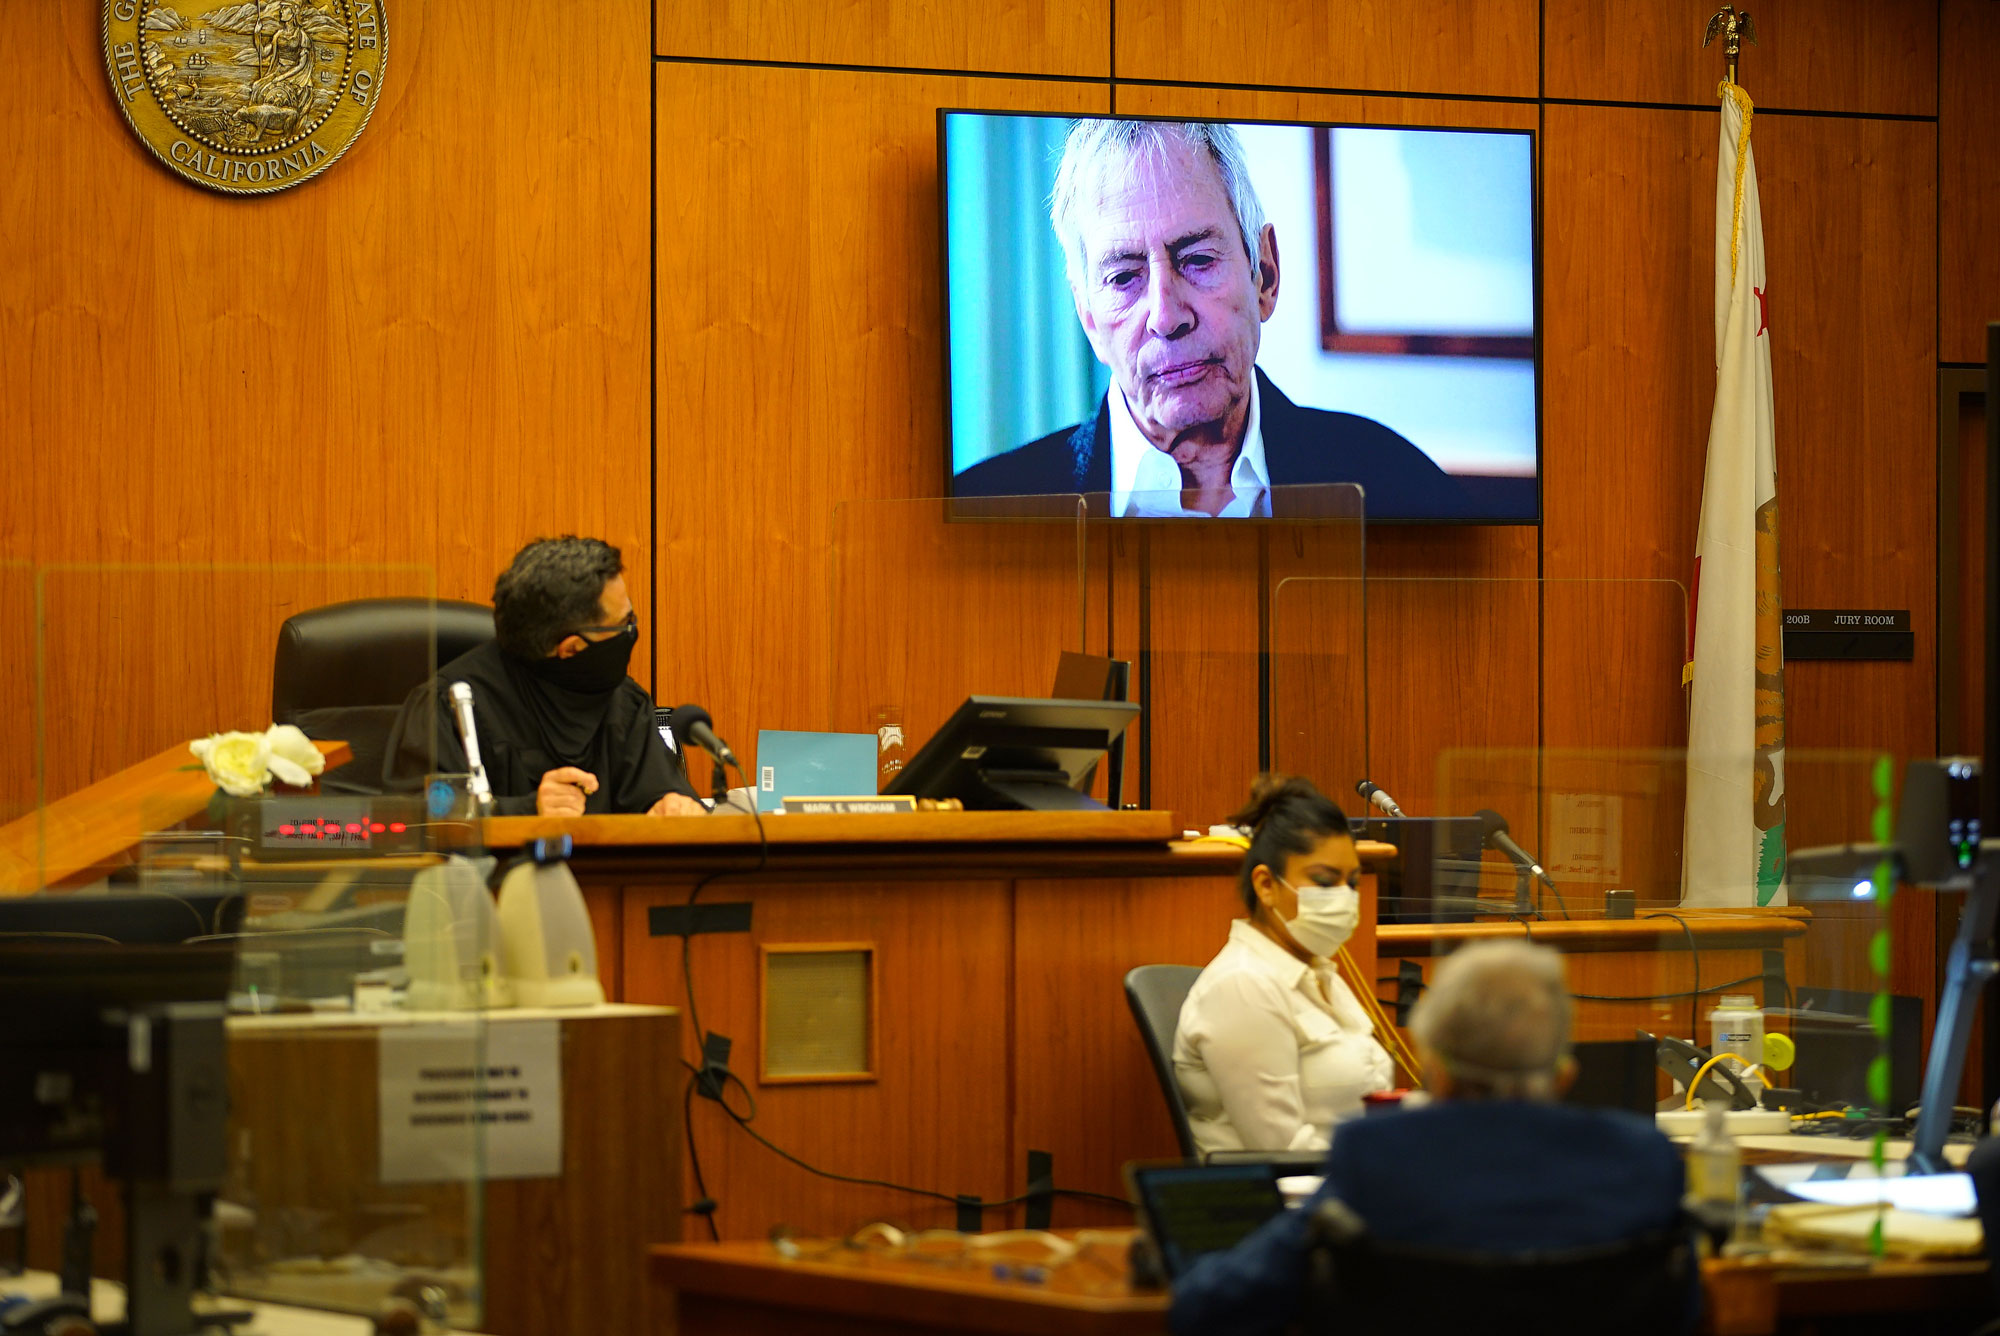 A TV still frame of Robert Durst appears on a screen as Deputy District Attorney John Lewin begins opening statements during court proceedings in his murder trial at Inglewood Courthouse on May 18, in California.